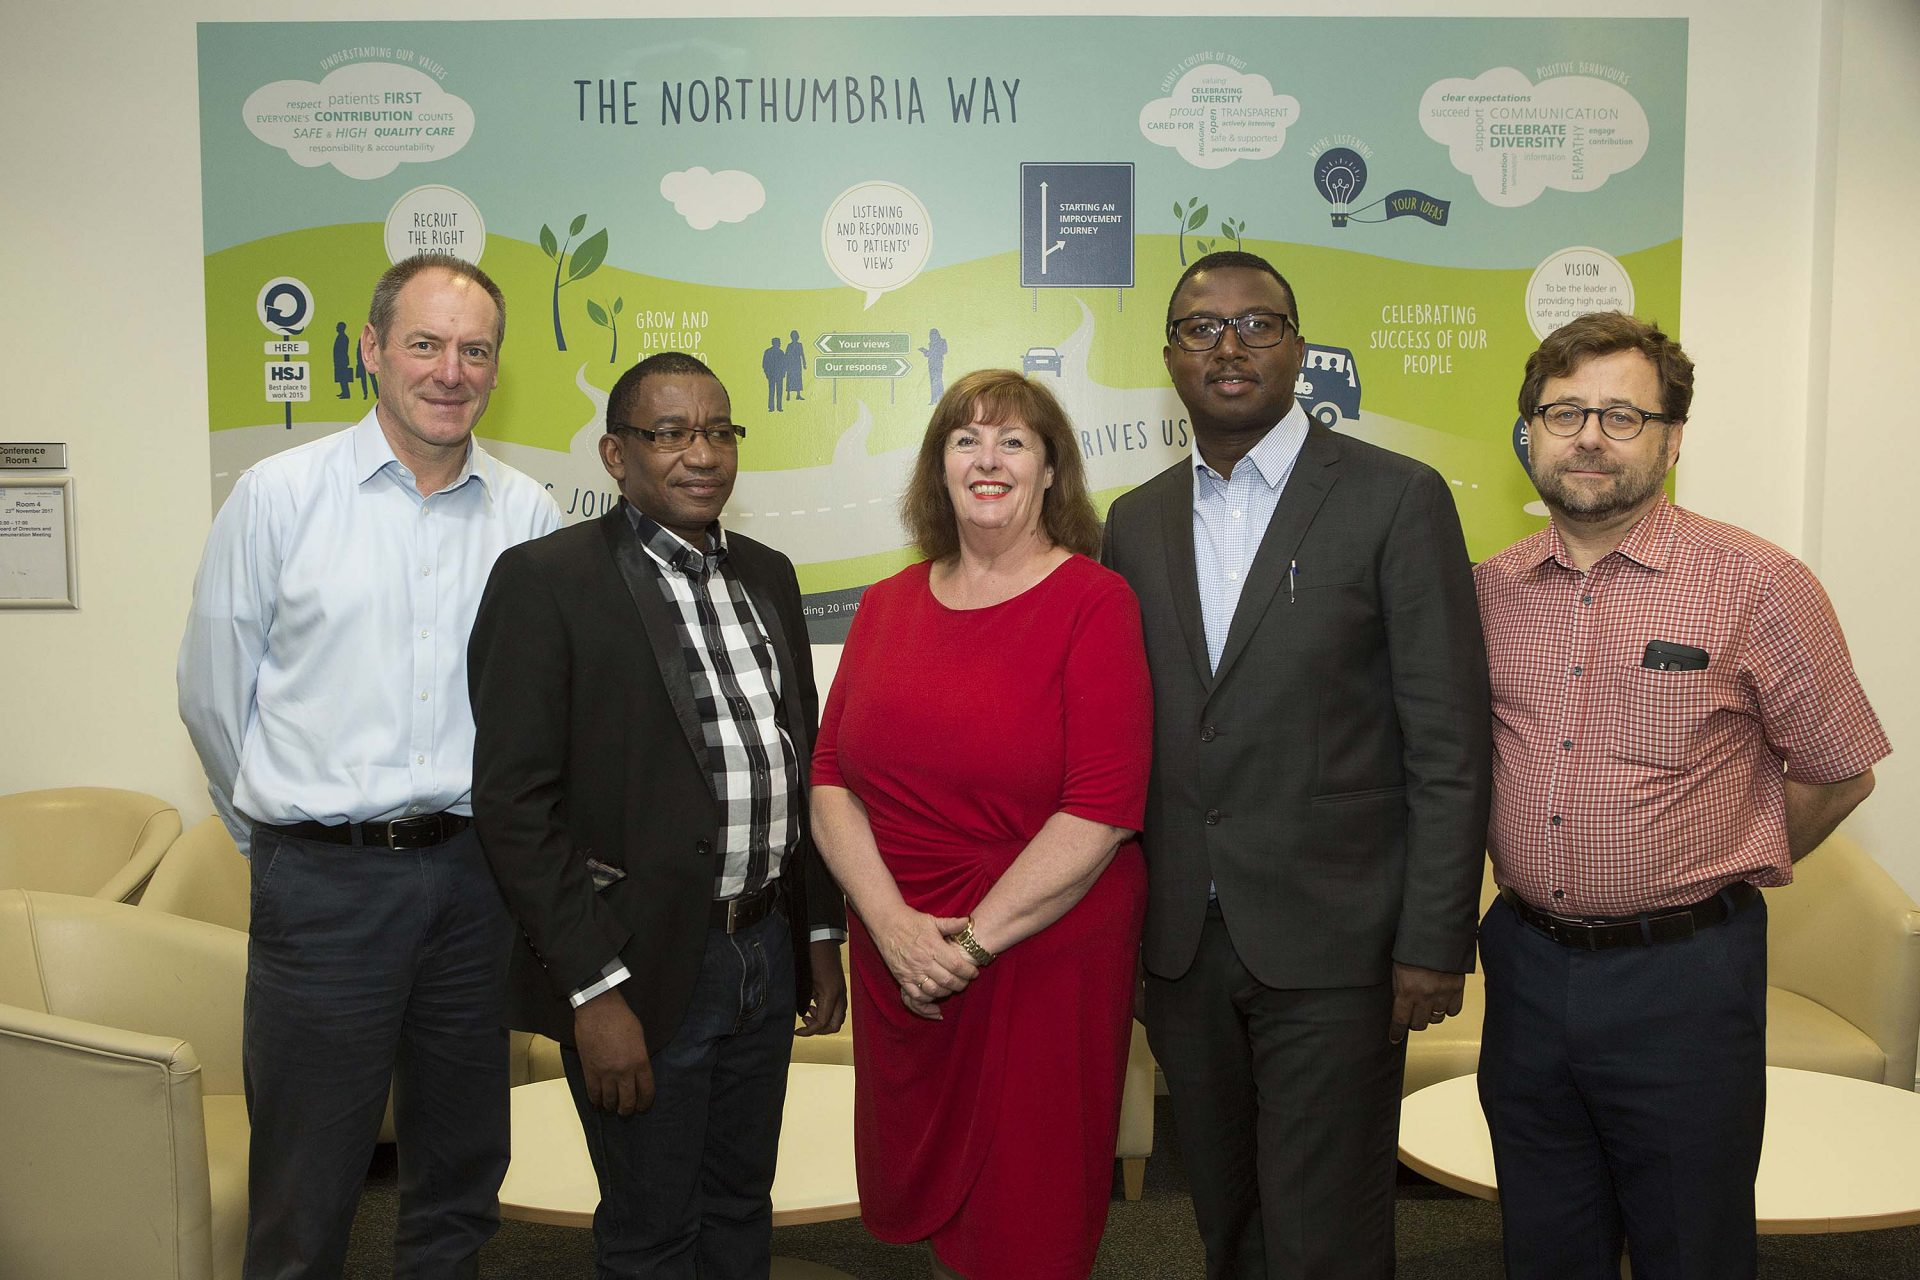 Tanzanian healthcare leaders celebrate Commonwealth partnership with Northumbria visit